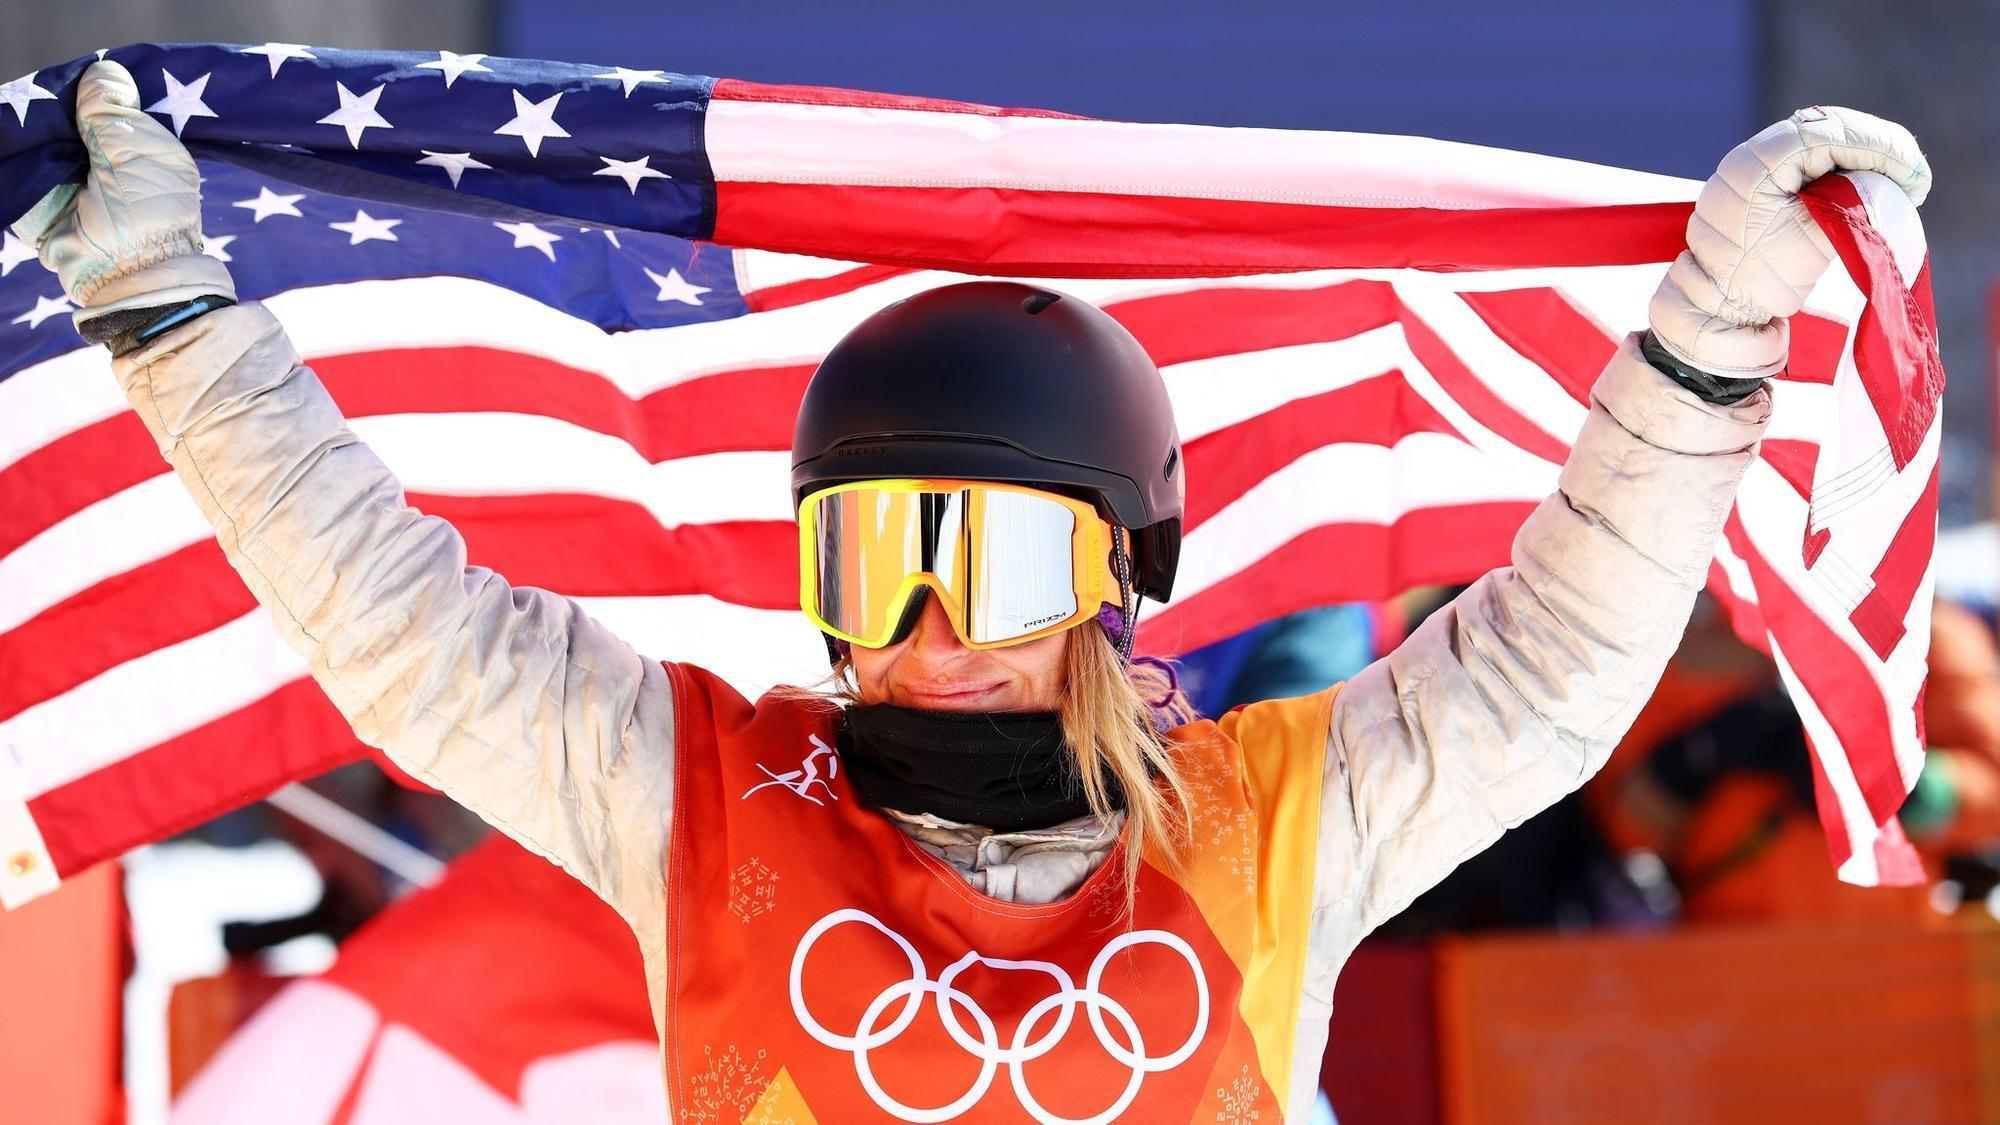 A gold medal for Jamie Anderson, but a black eye for ...